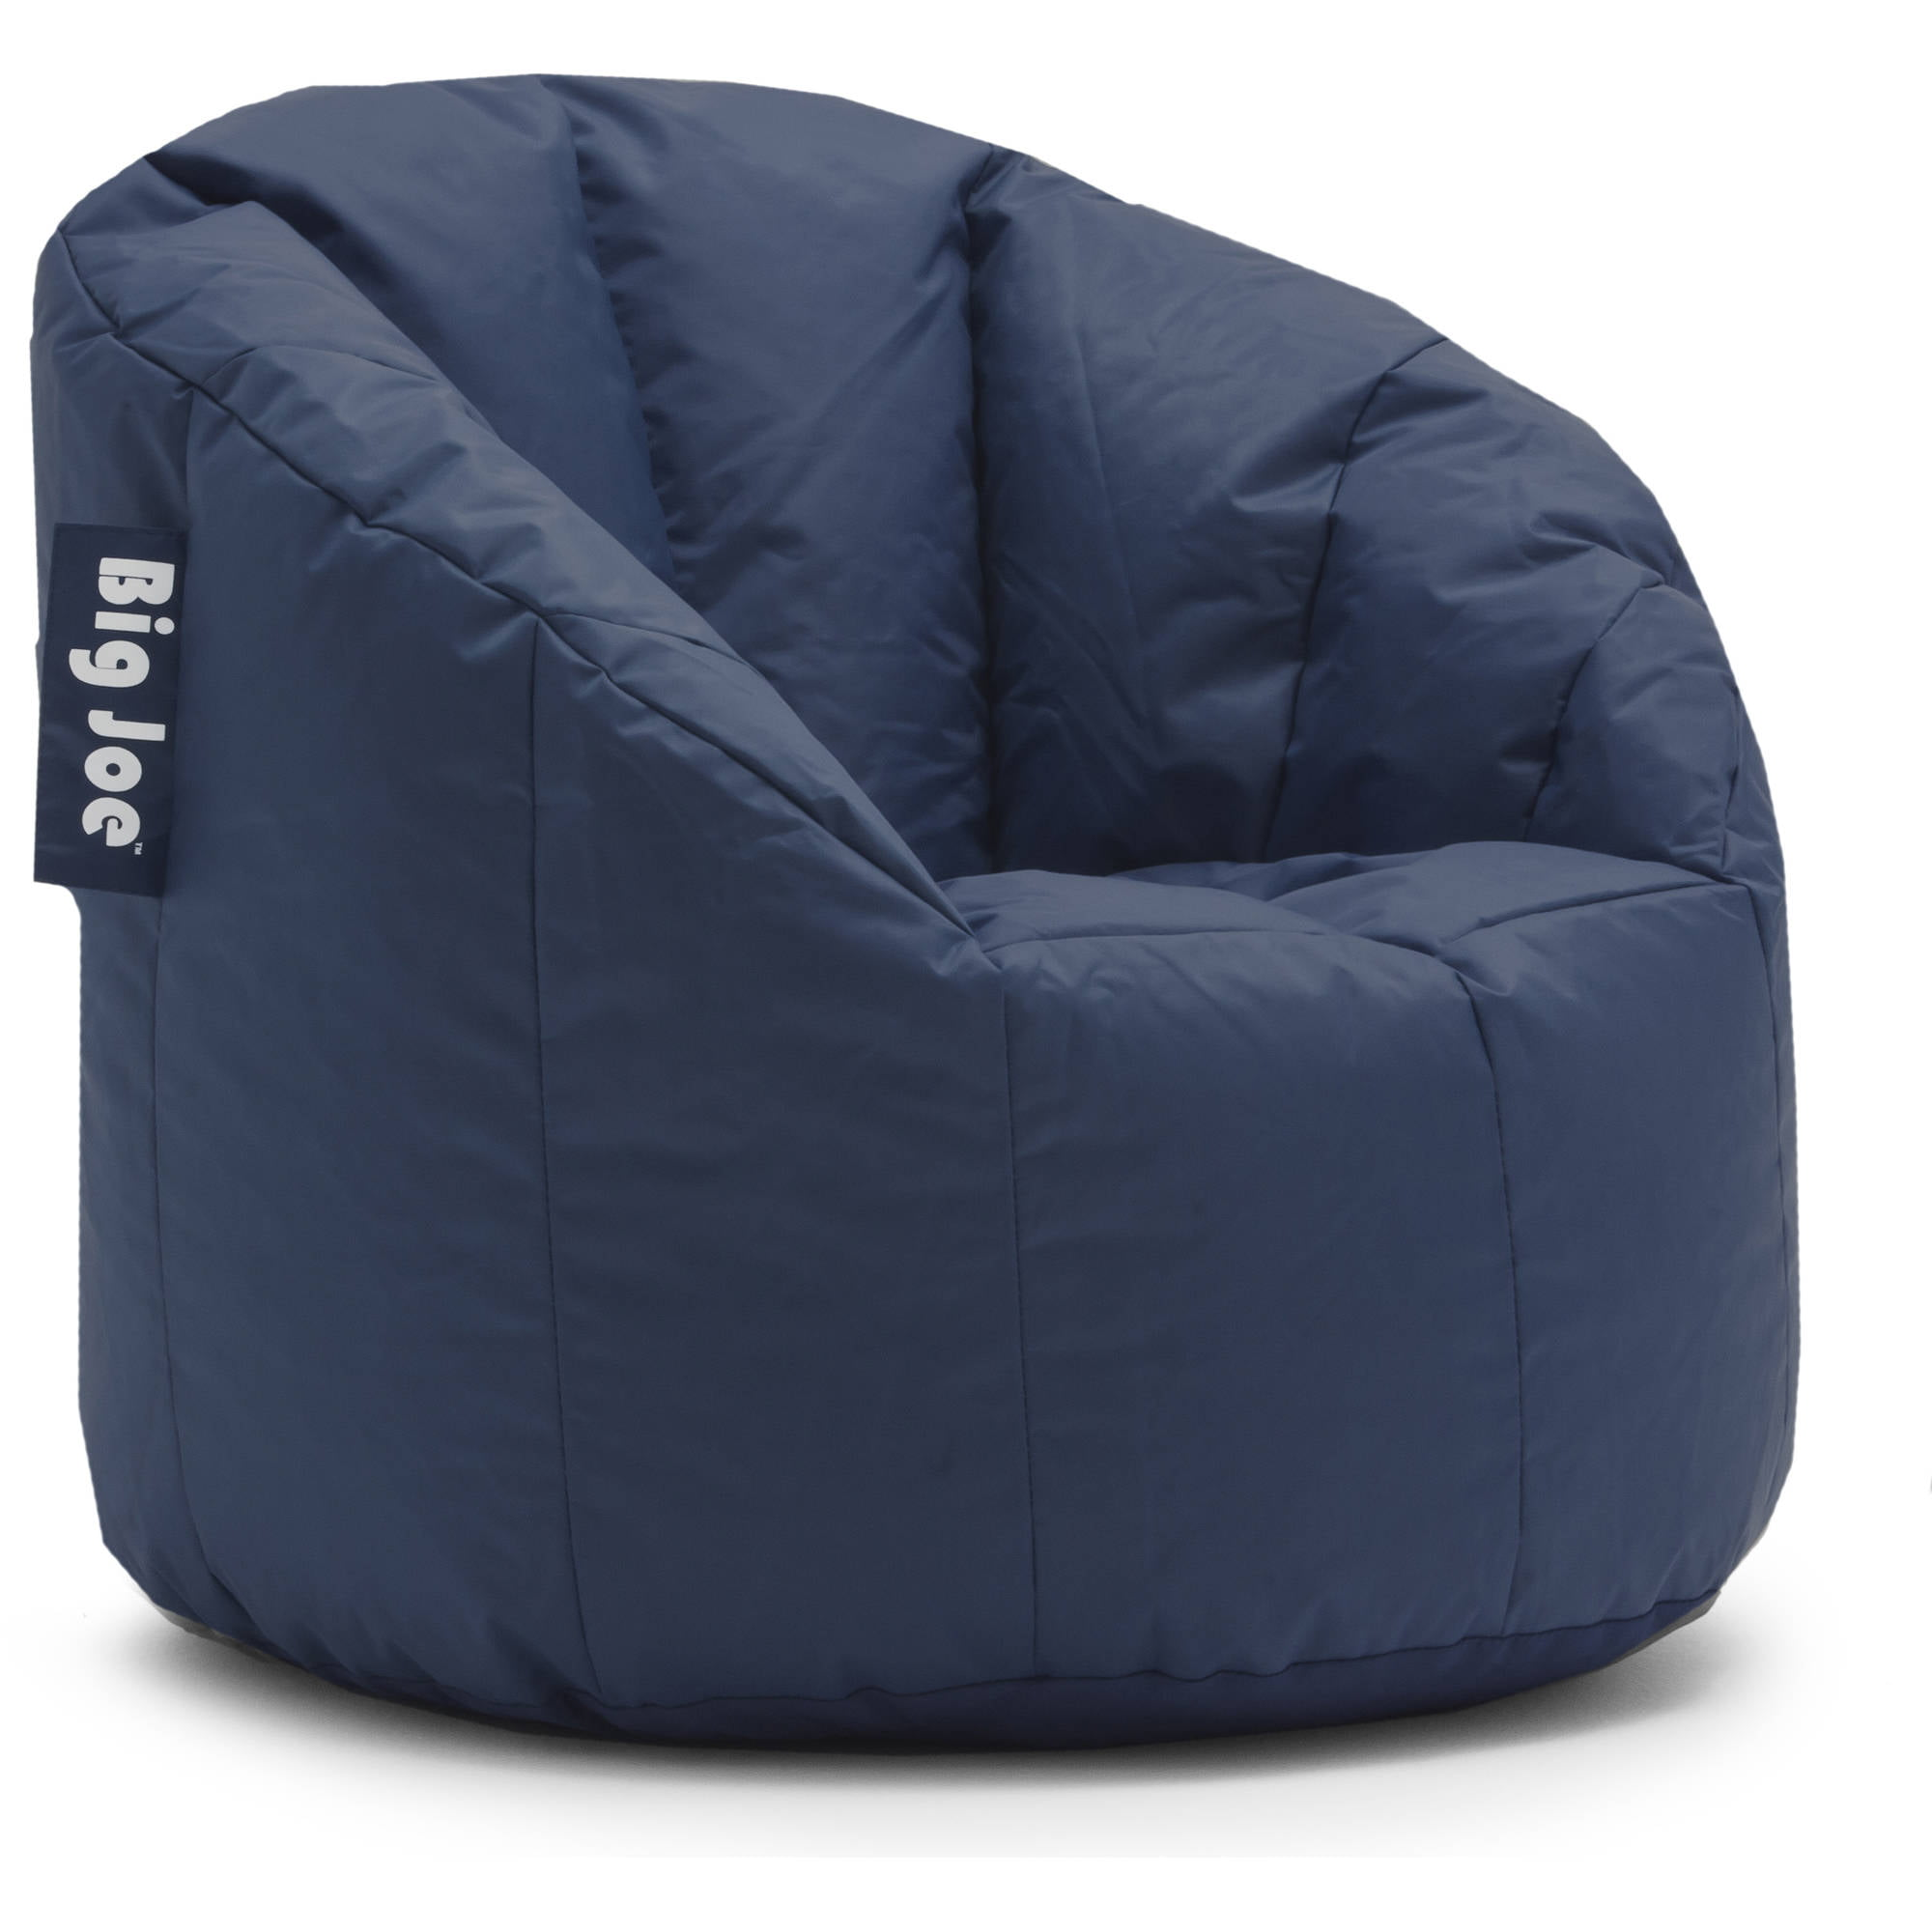 "132"" Round Extra Shiny Bean Bag Multiple Colors Walmart"